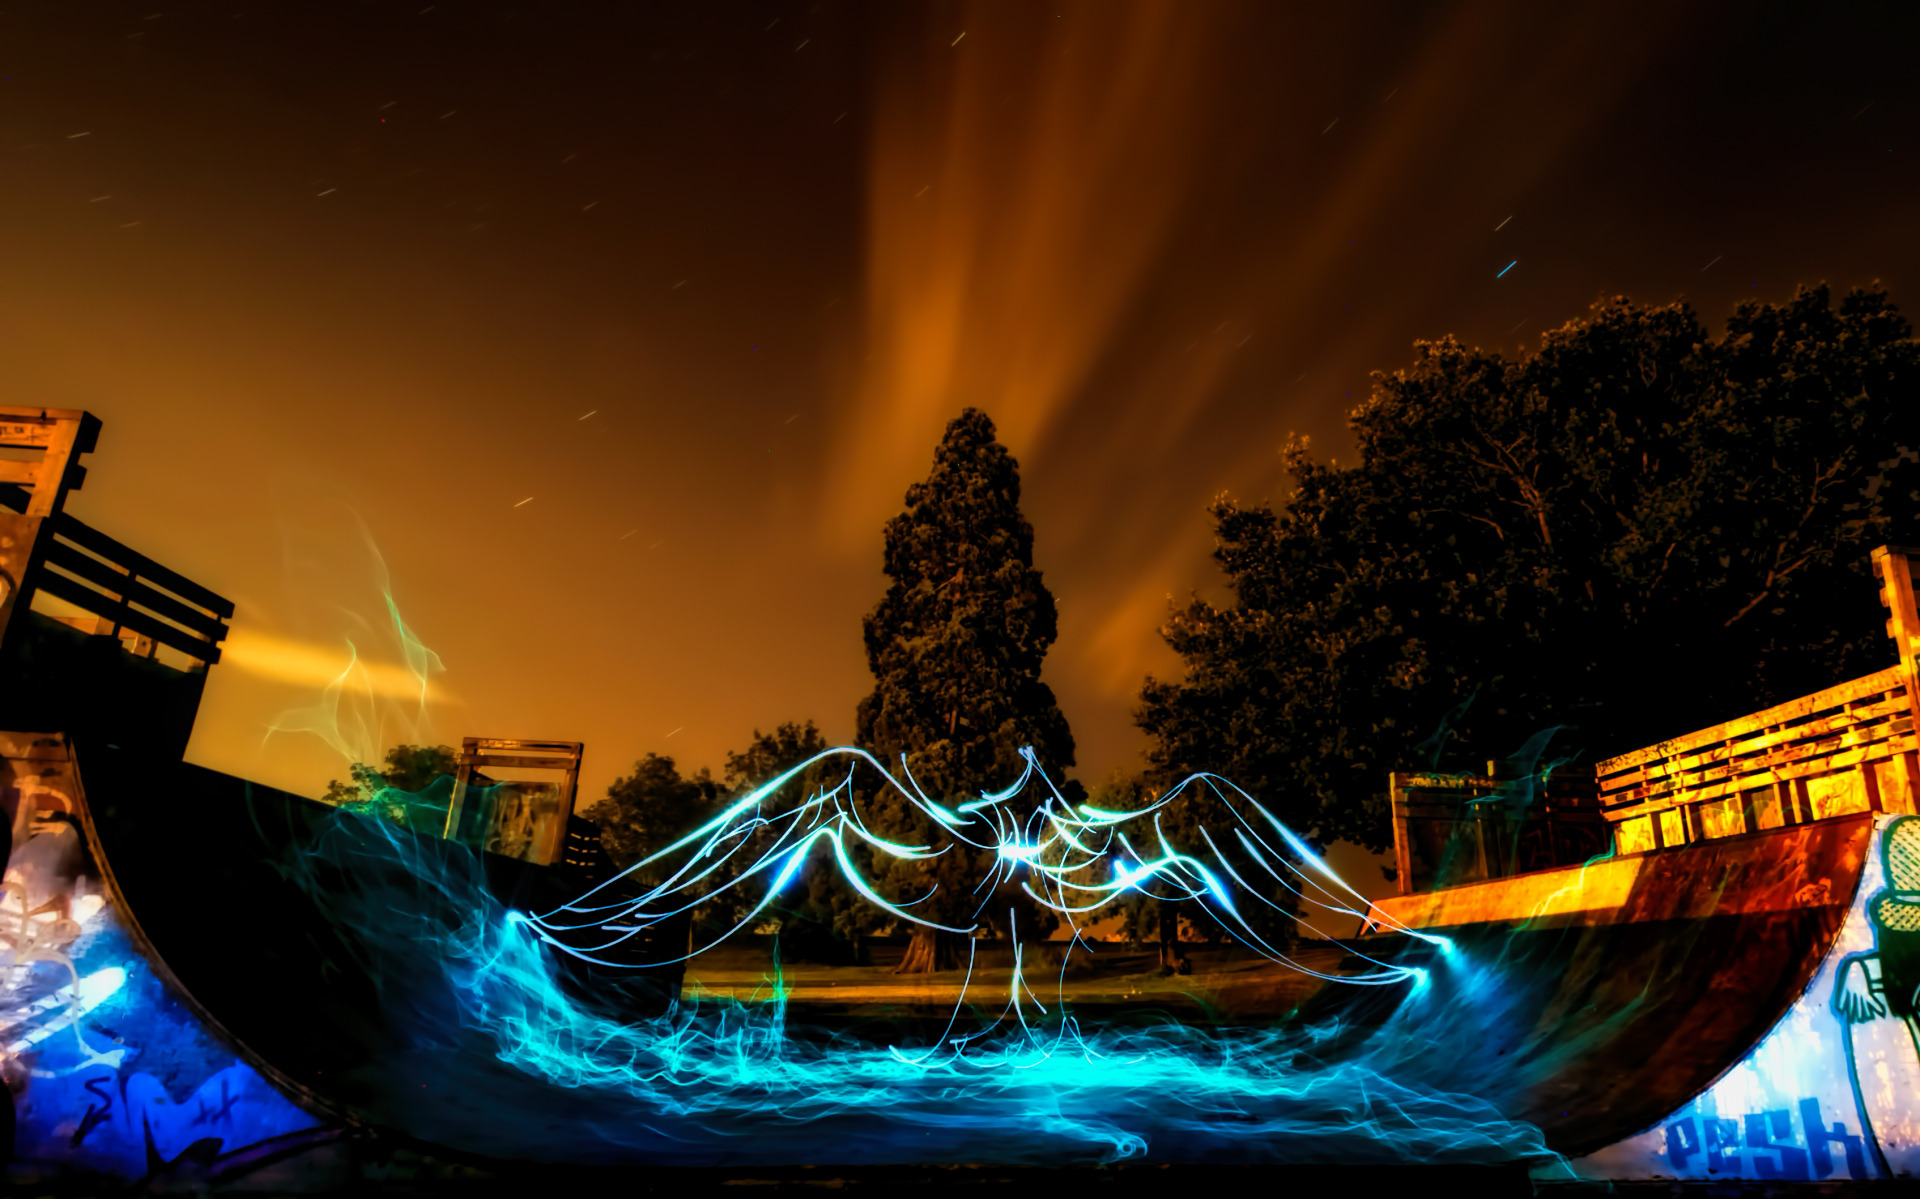 Electric Skate Park Angel Wings widescreen wallpaper Wide 1920x1199